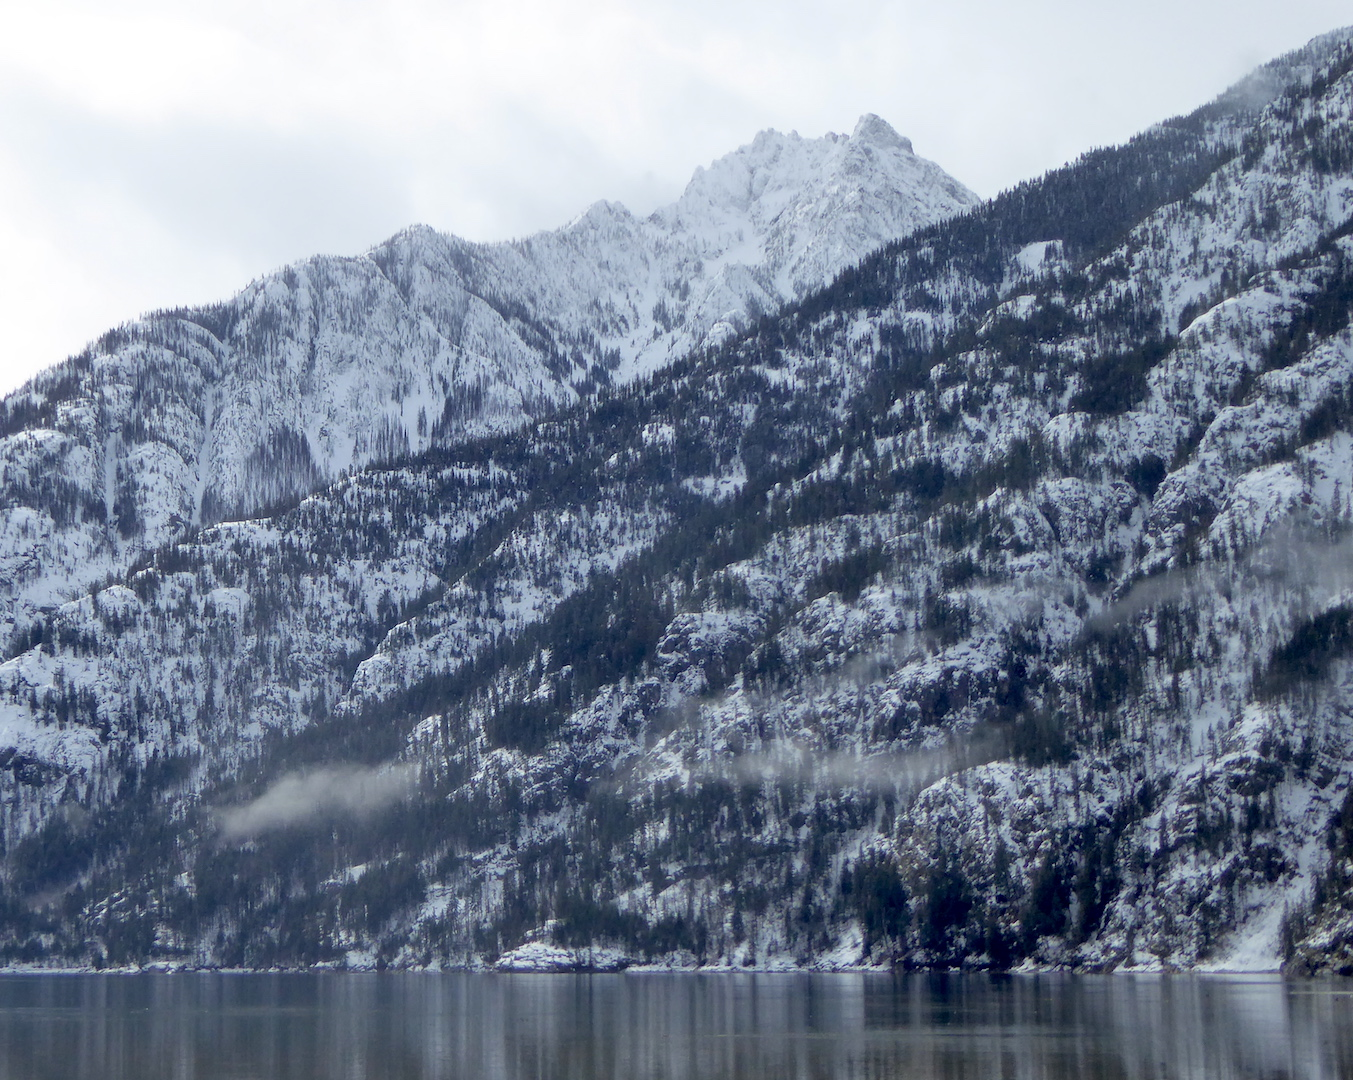 view of snowy mountains rising above lake